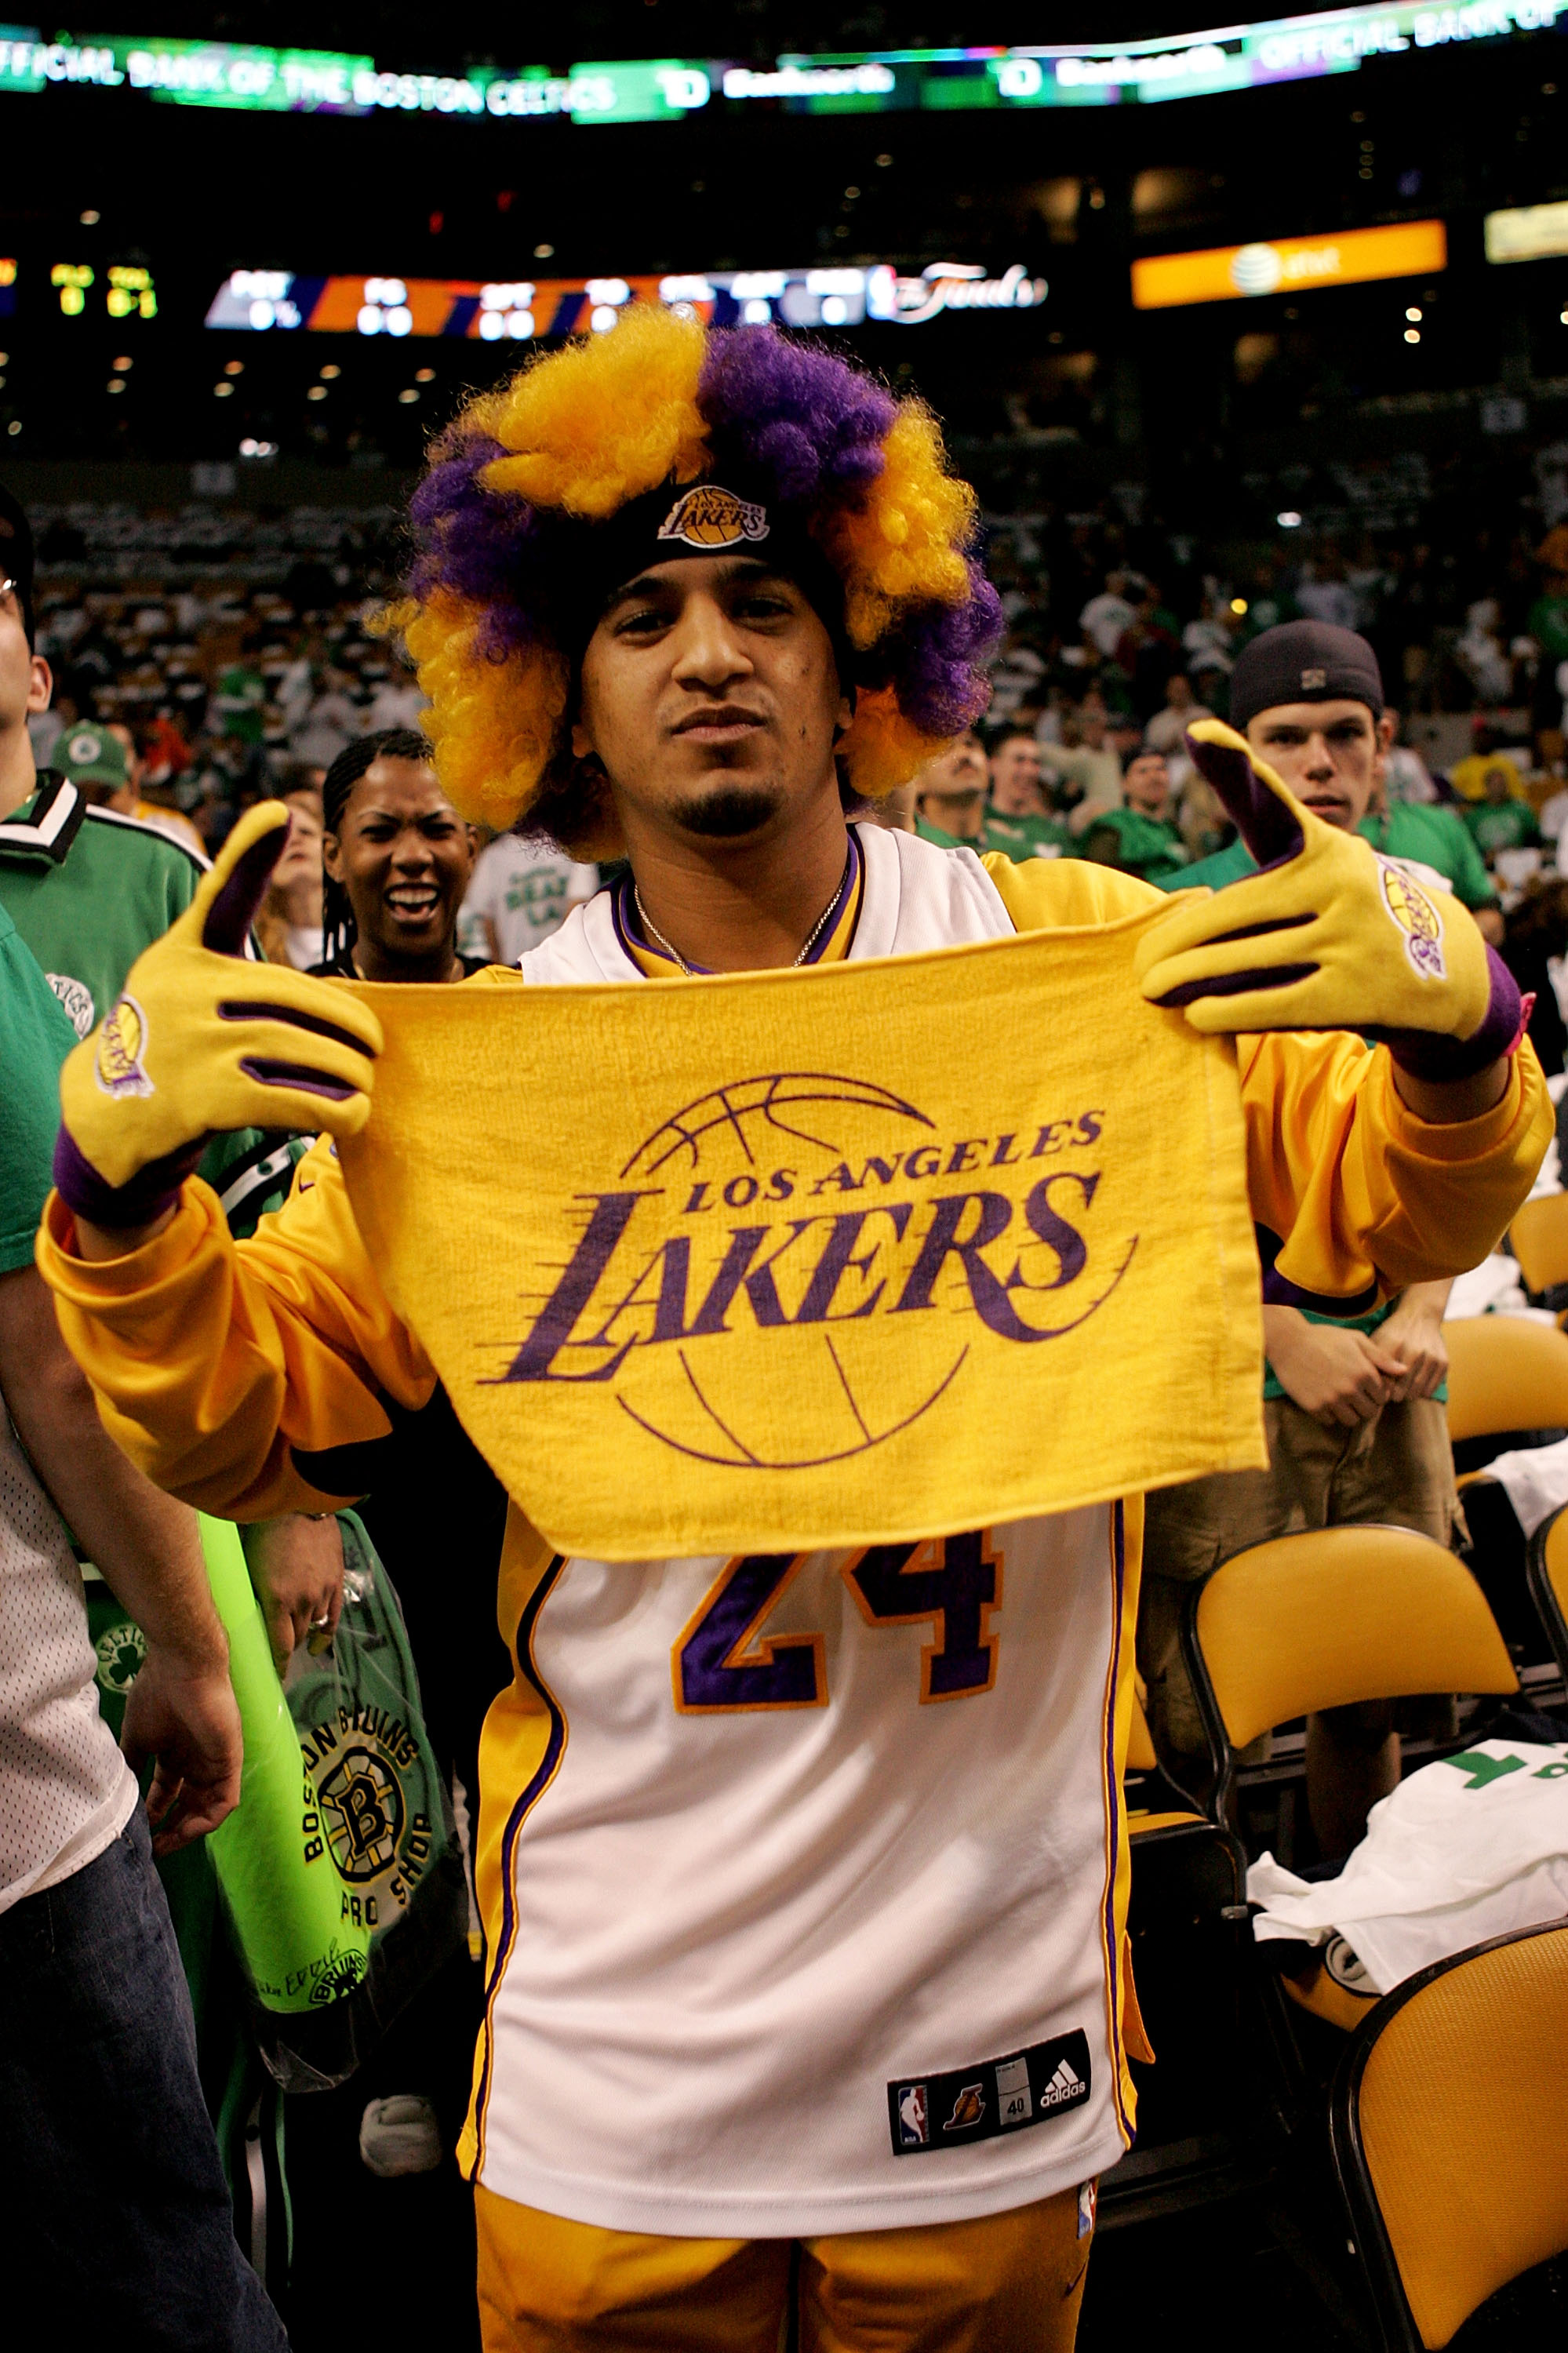 cbc5228a6d4 BOSTON - JUNE 05: A Los Angeles Laker fan attends Game One of the 2008